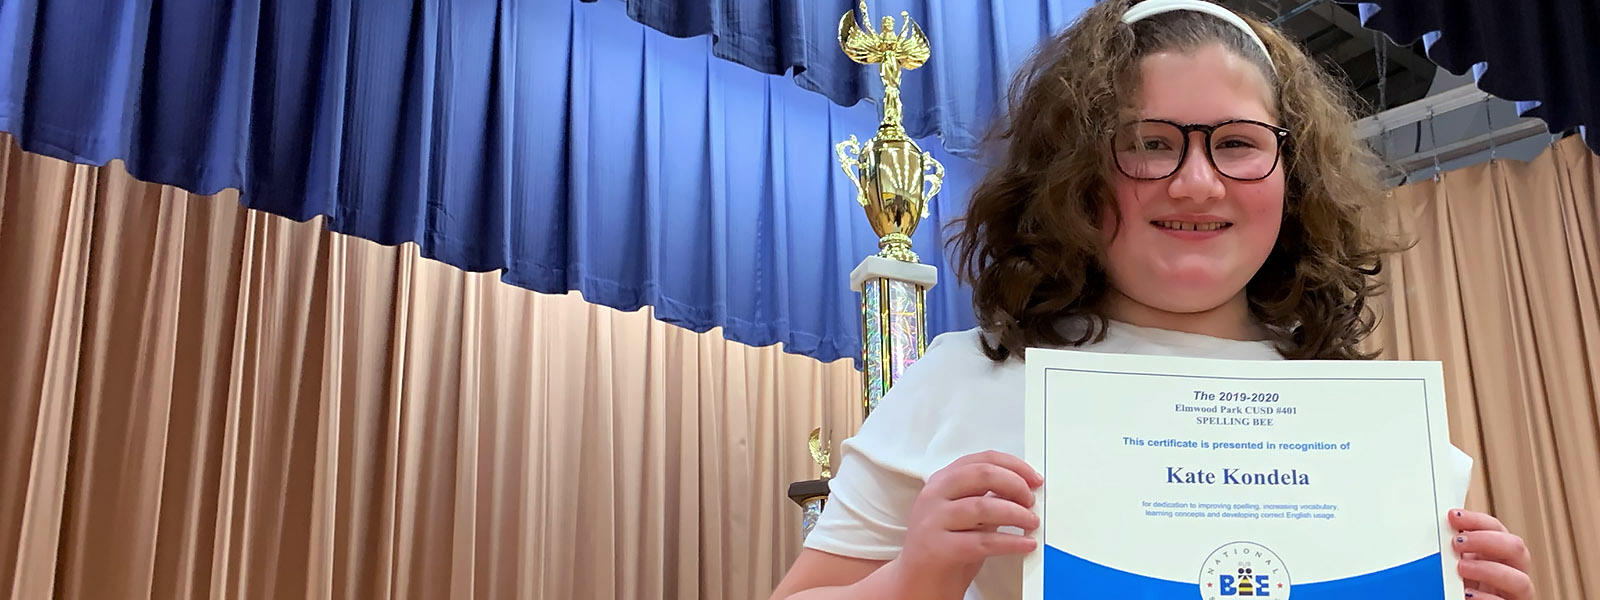 Kate Kondela displays her certificate after winning the 202 District Spelling Bee.